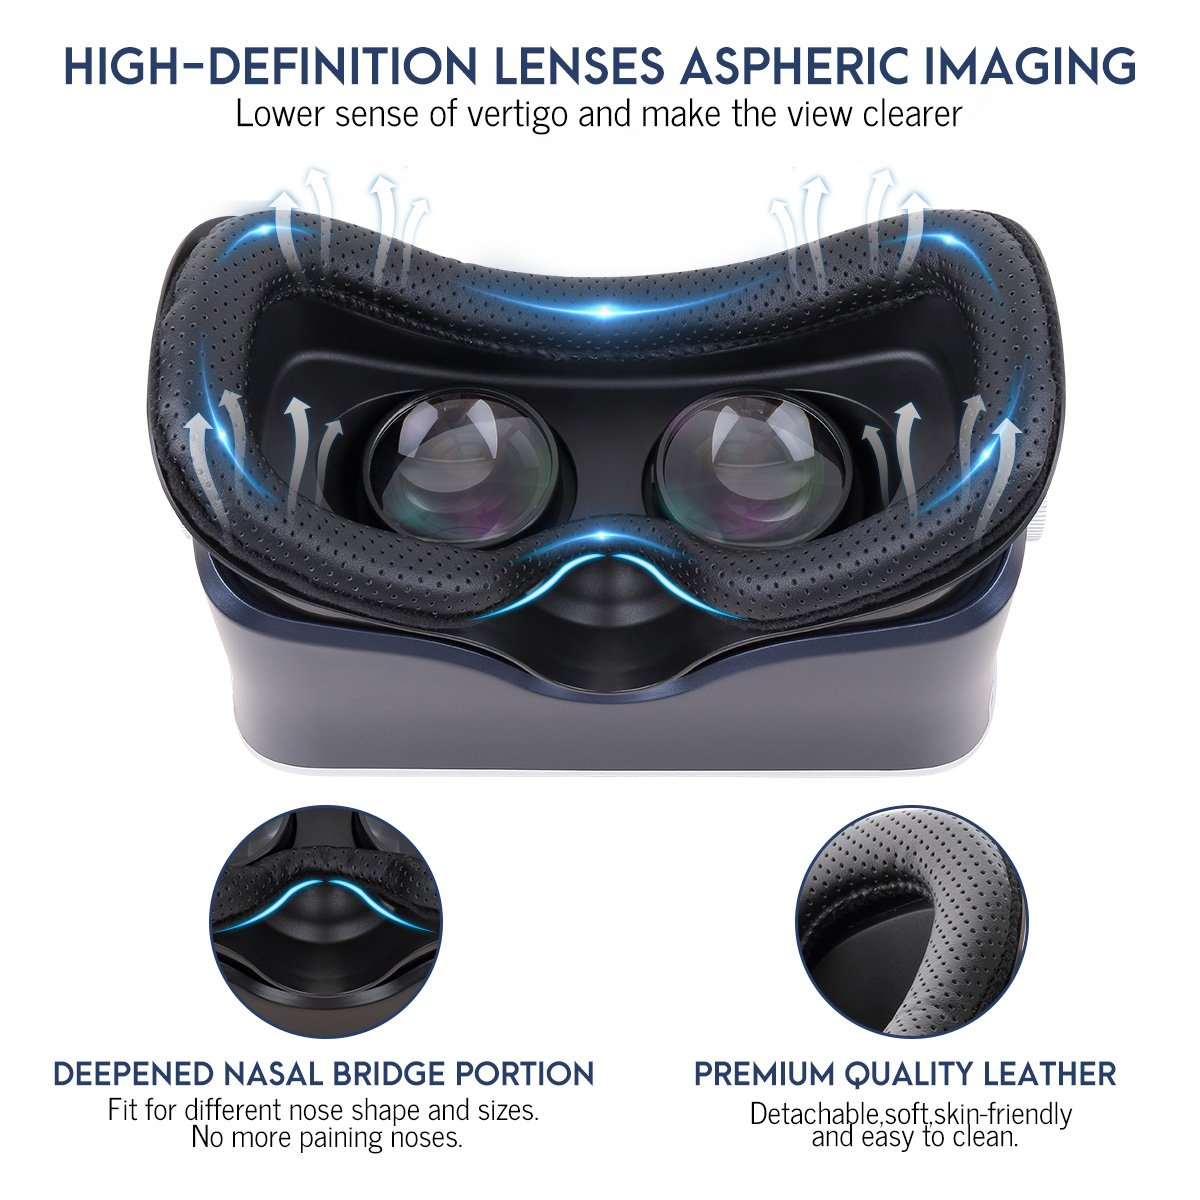 Pansonite 3D VR Glasses Virtual Reality Headset for Games & 3D Movies, Upgraded & Lightweight with Adjustable Pupil and Object Distance for IOS and Android Smartphone by Pansonite (Image #6)